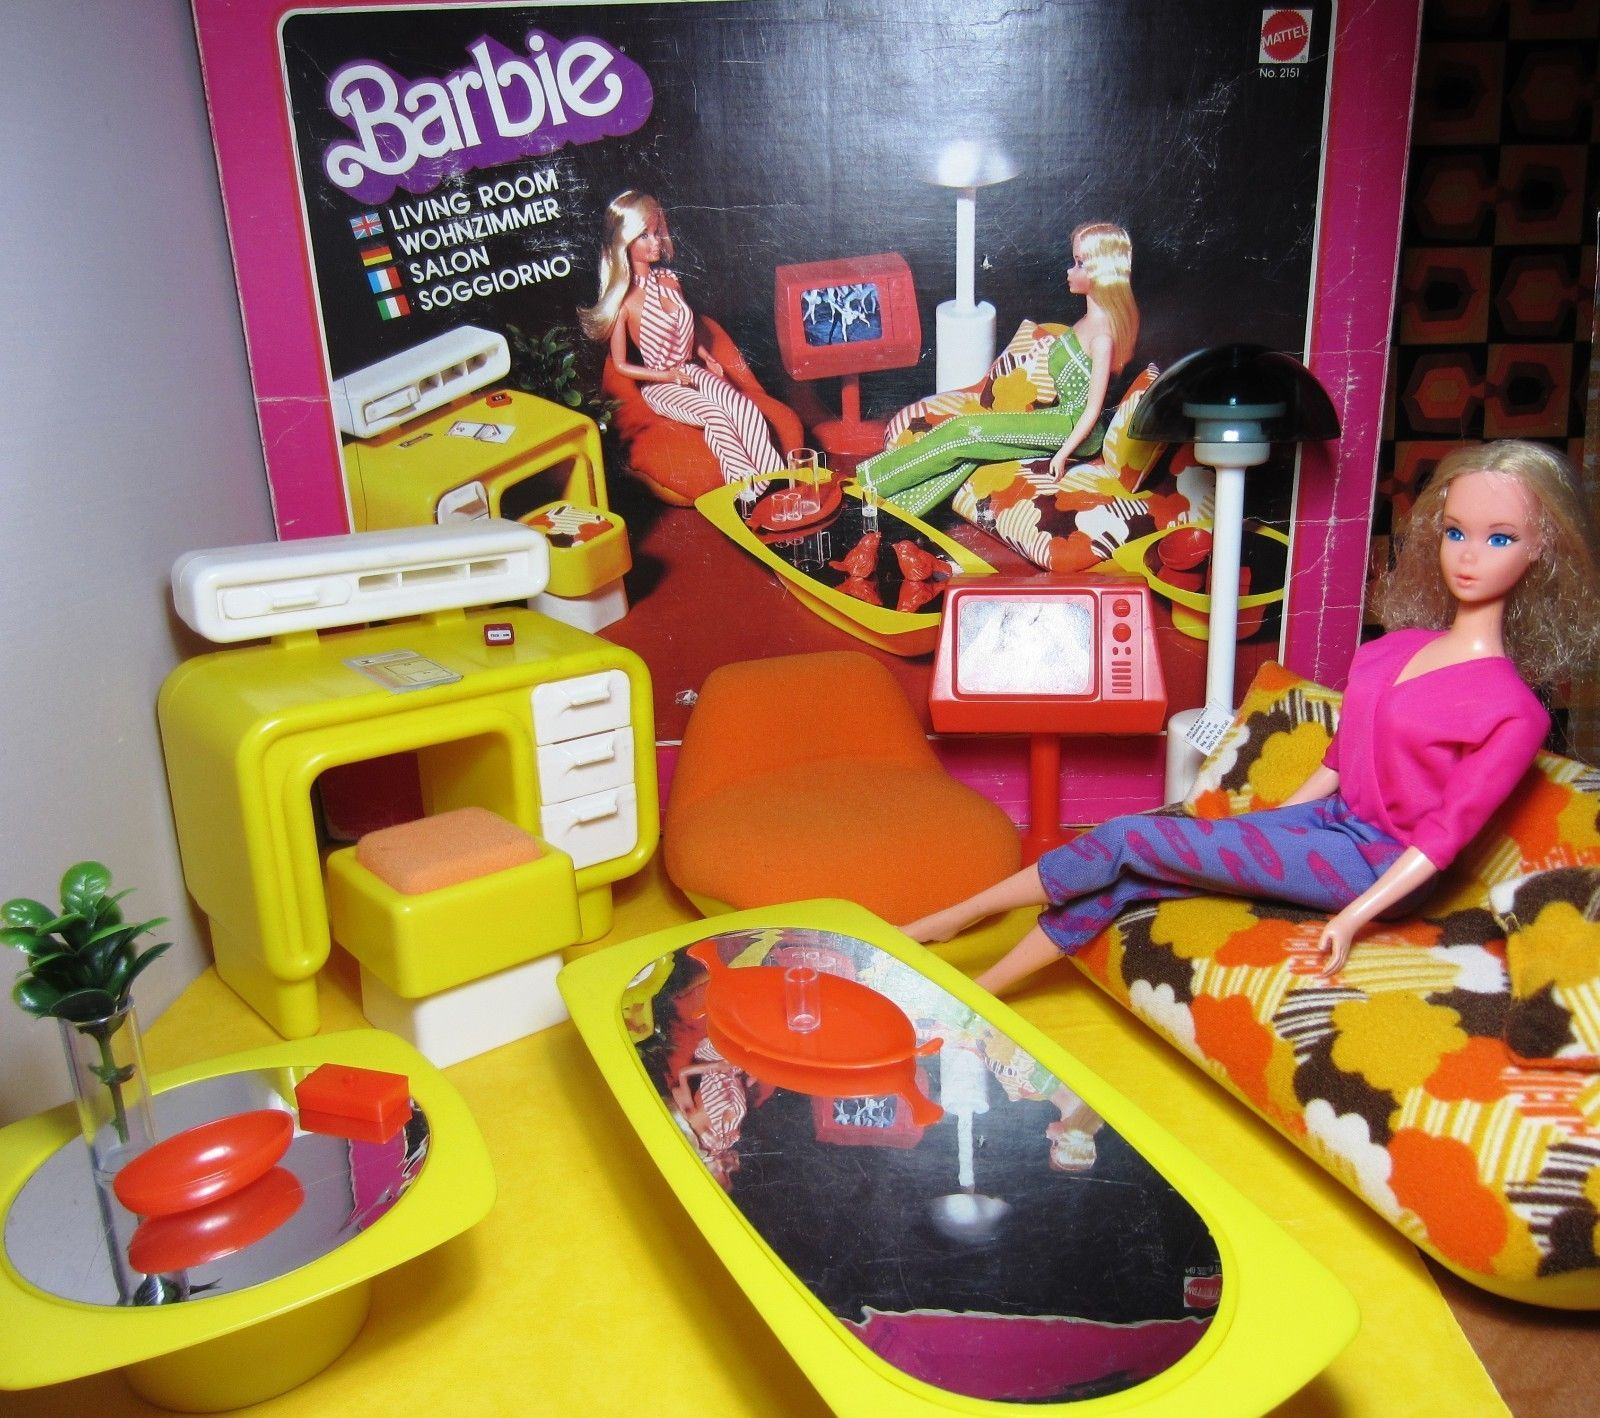 Barbie Bedroom In A Box: Vintage 1977 Barbie Living Room Furniture Original Box